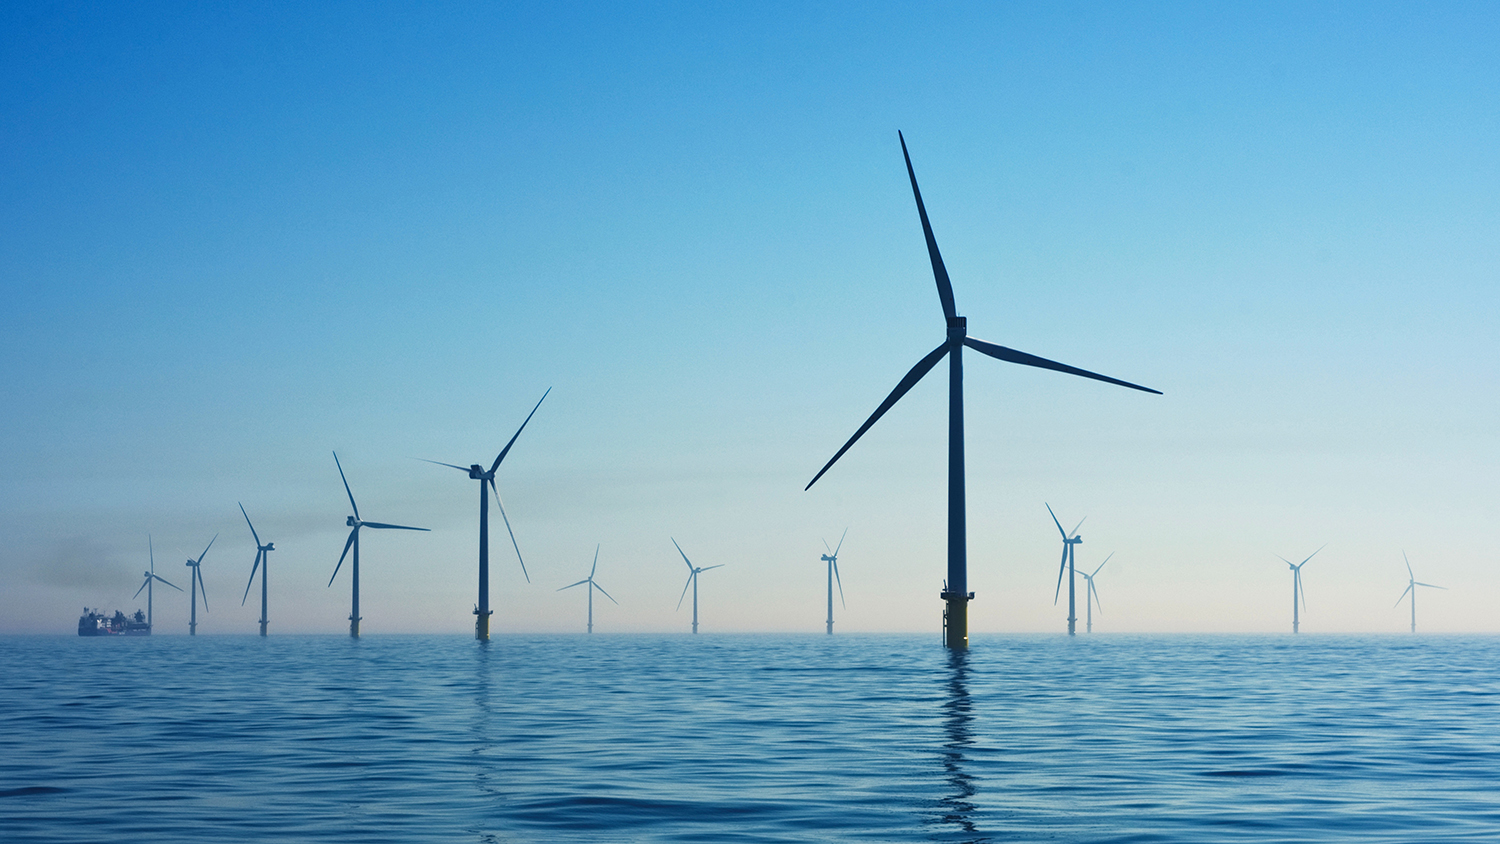 photo of a wind farm in the sea